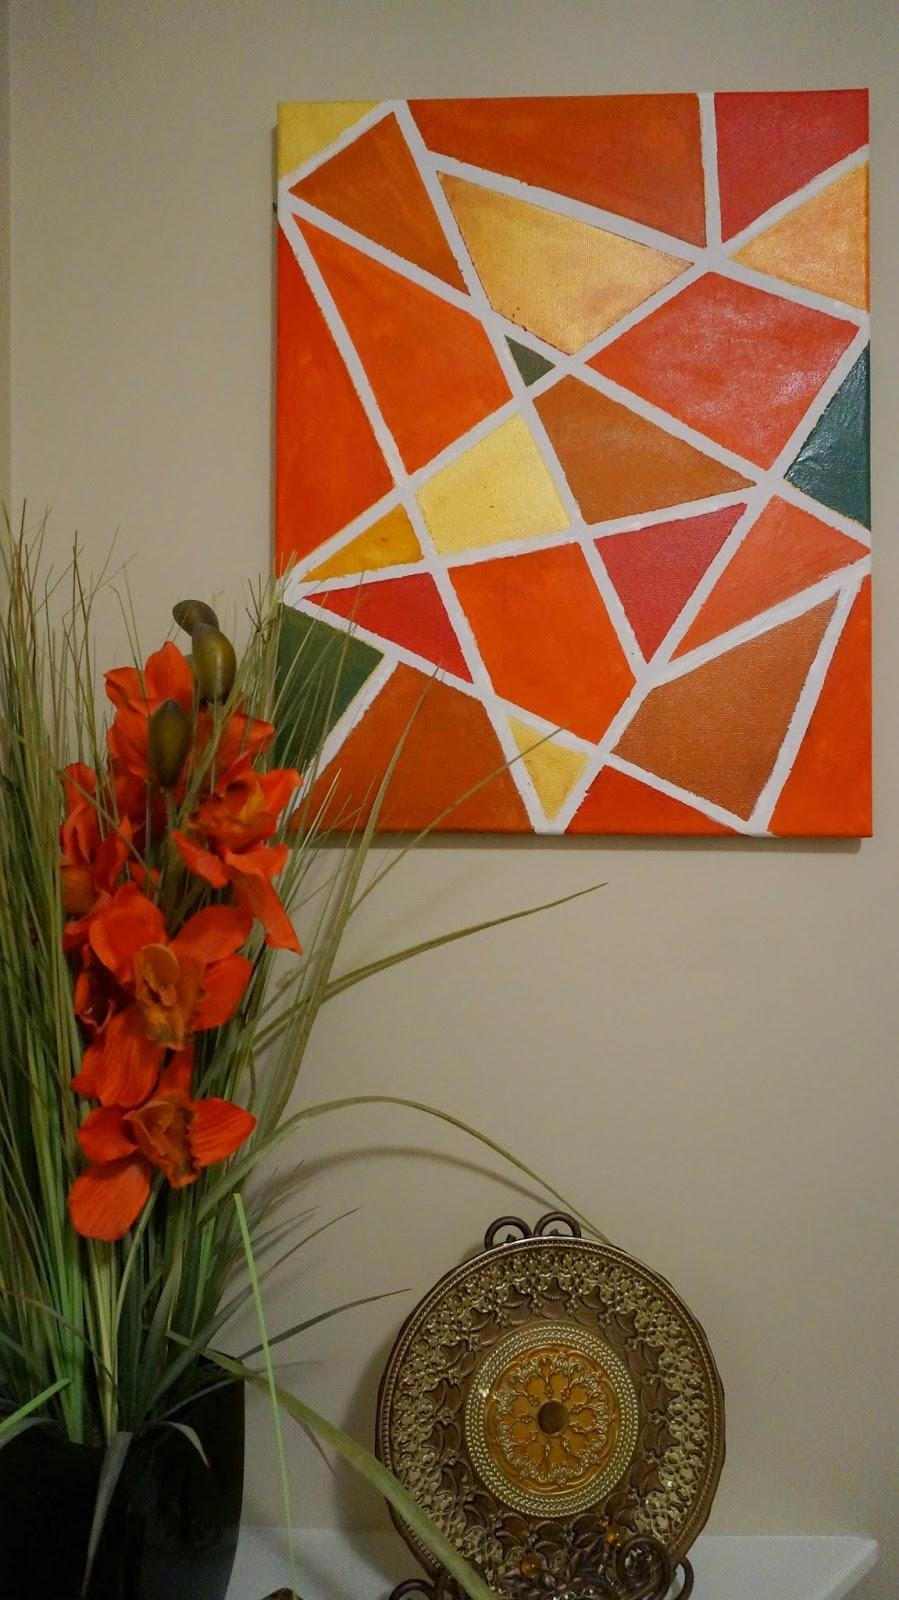 We Love Cozy Homes: Diy Wall Art Intended For Duct Tape Wall Art (Image 19 of 20)